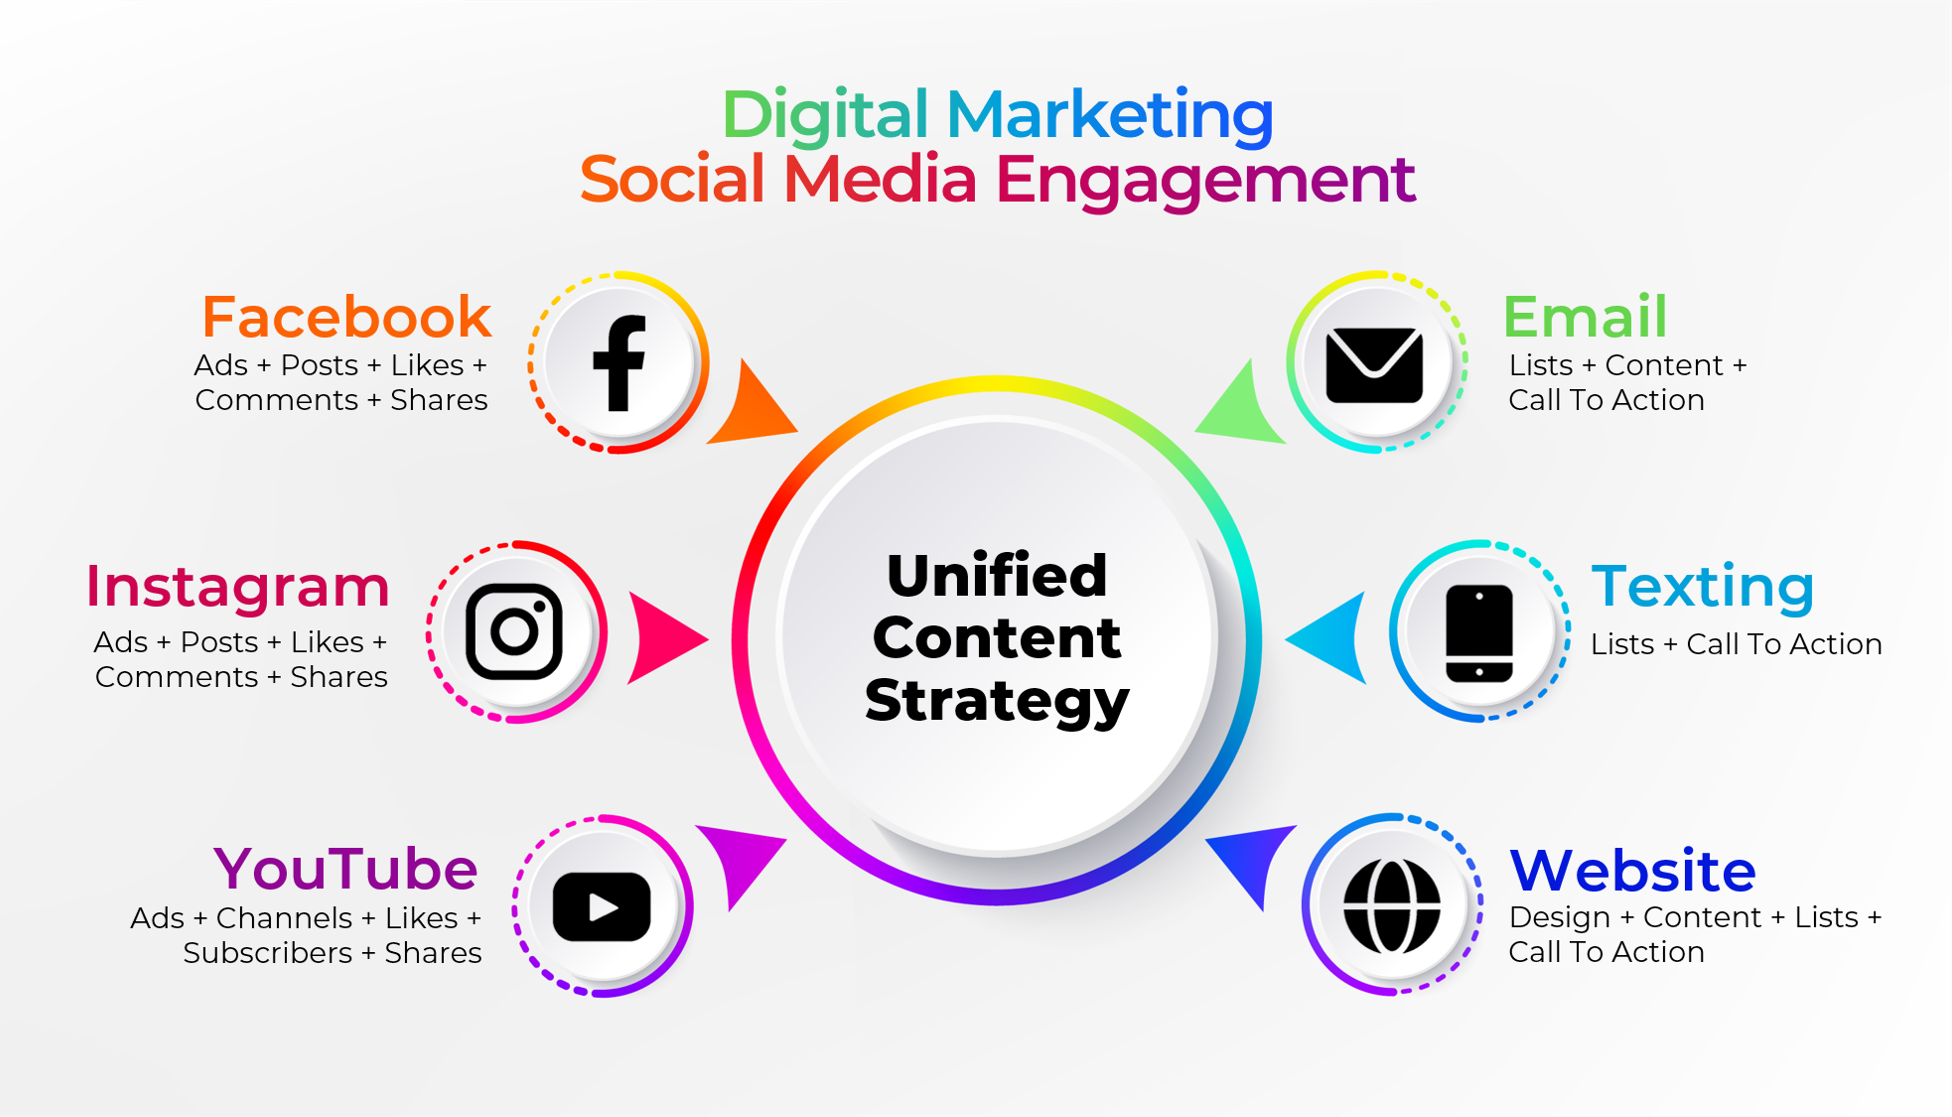 Digital Marketing and Social Media Engagement - www.visualbreakthroughs.com